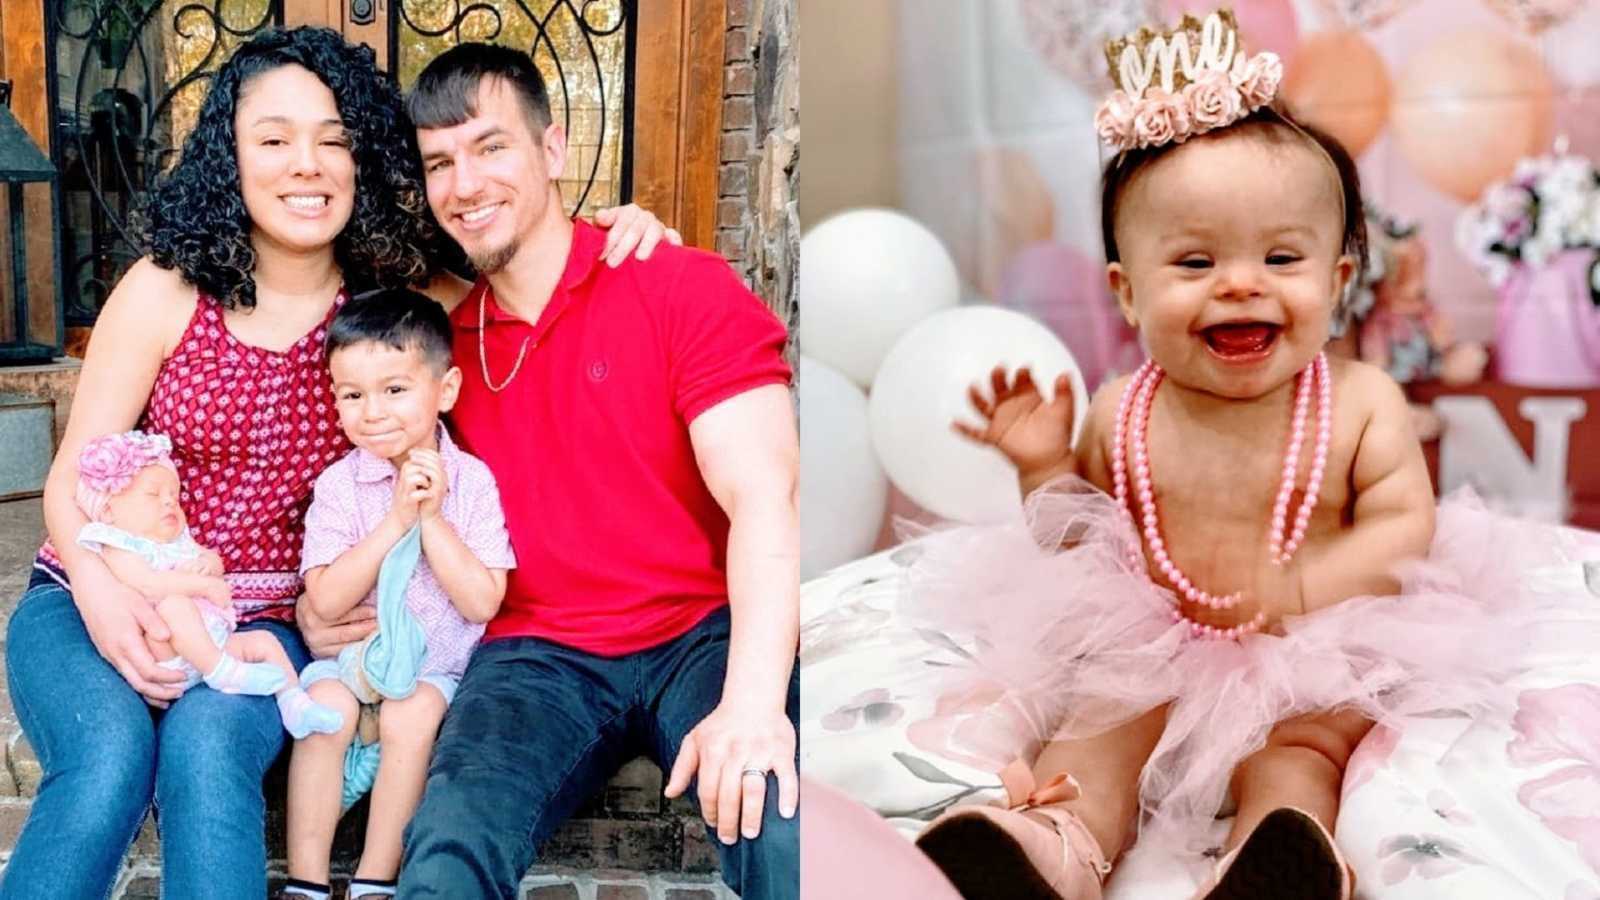 Parents sit with their two children and a little girl with Down Syndrome wearing a tutu